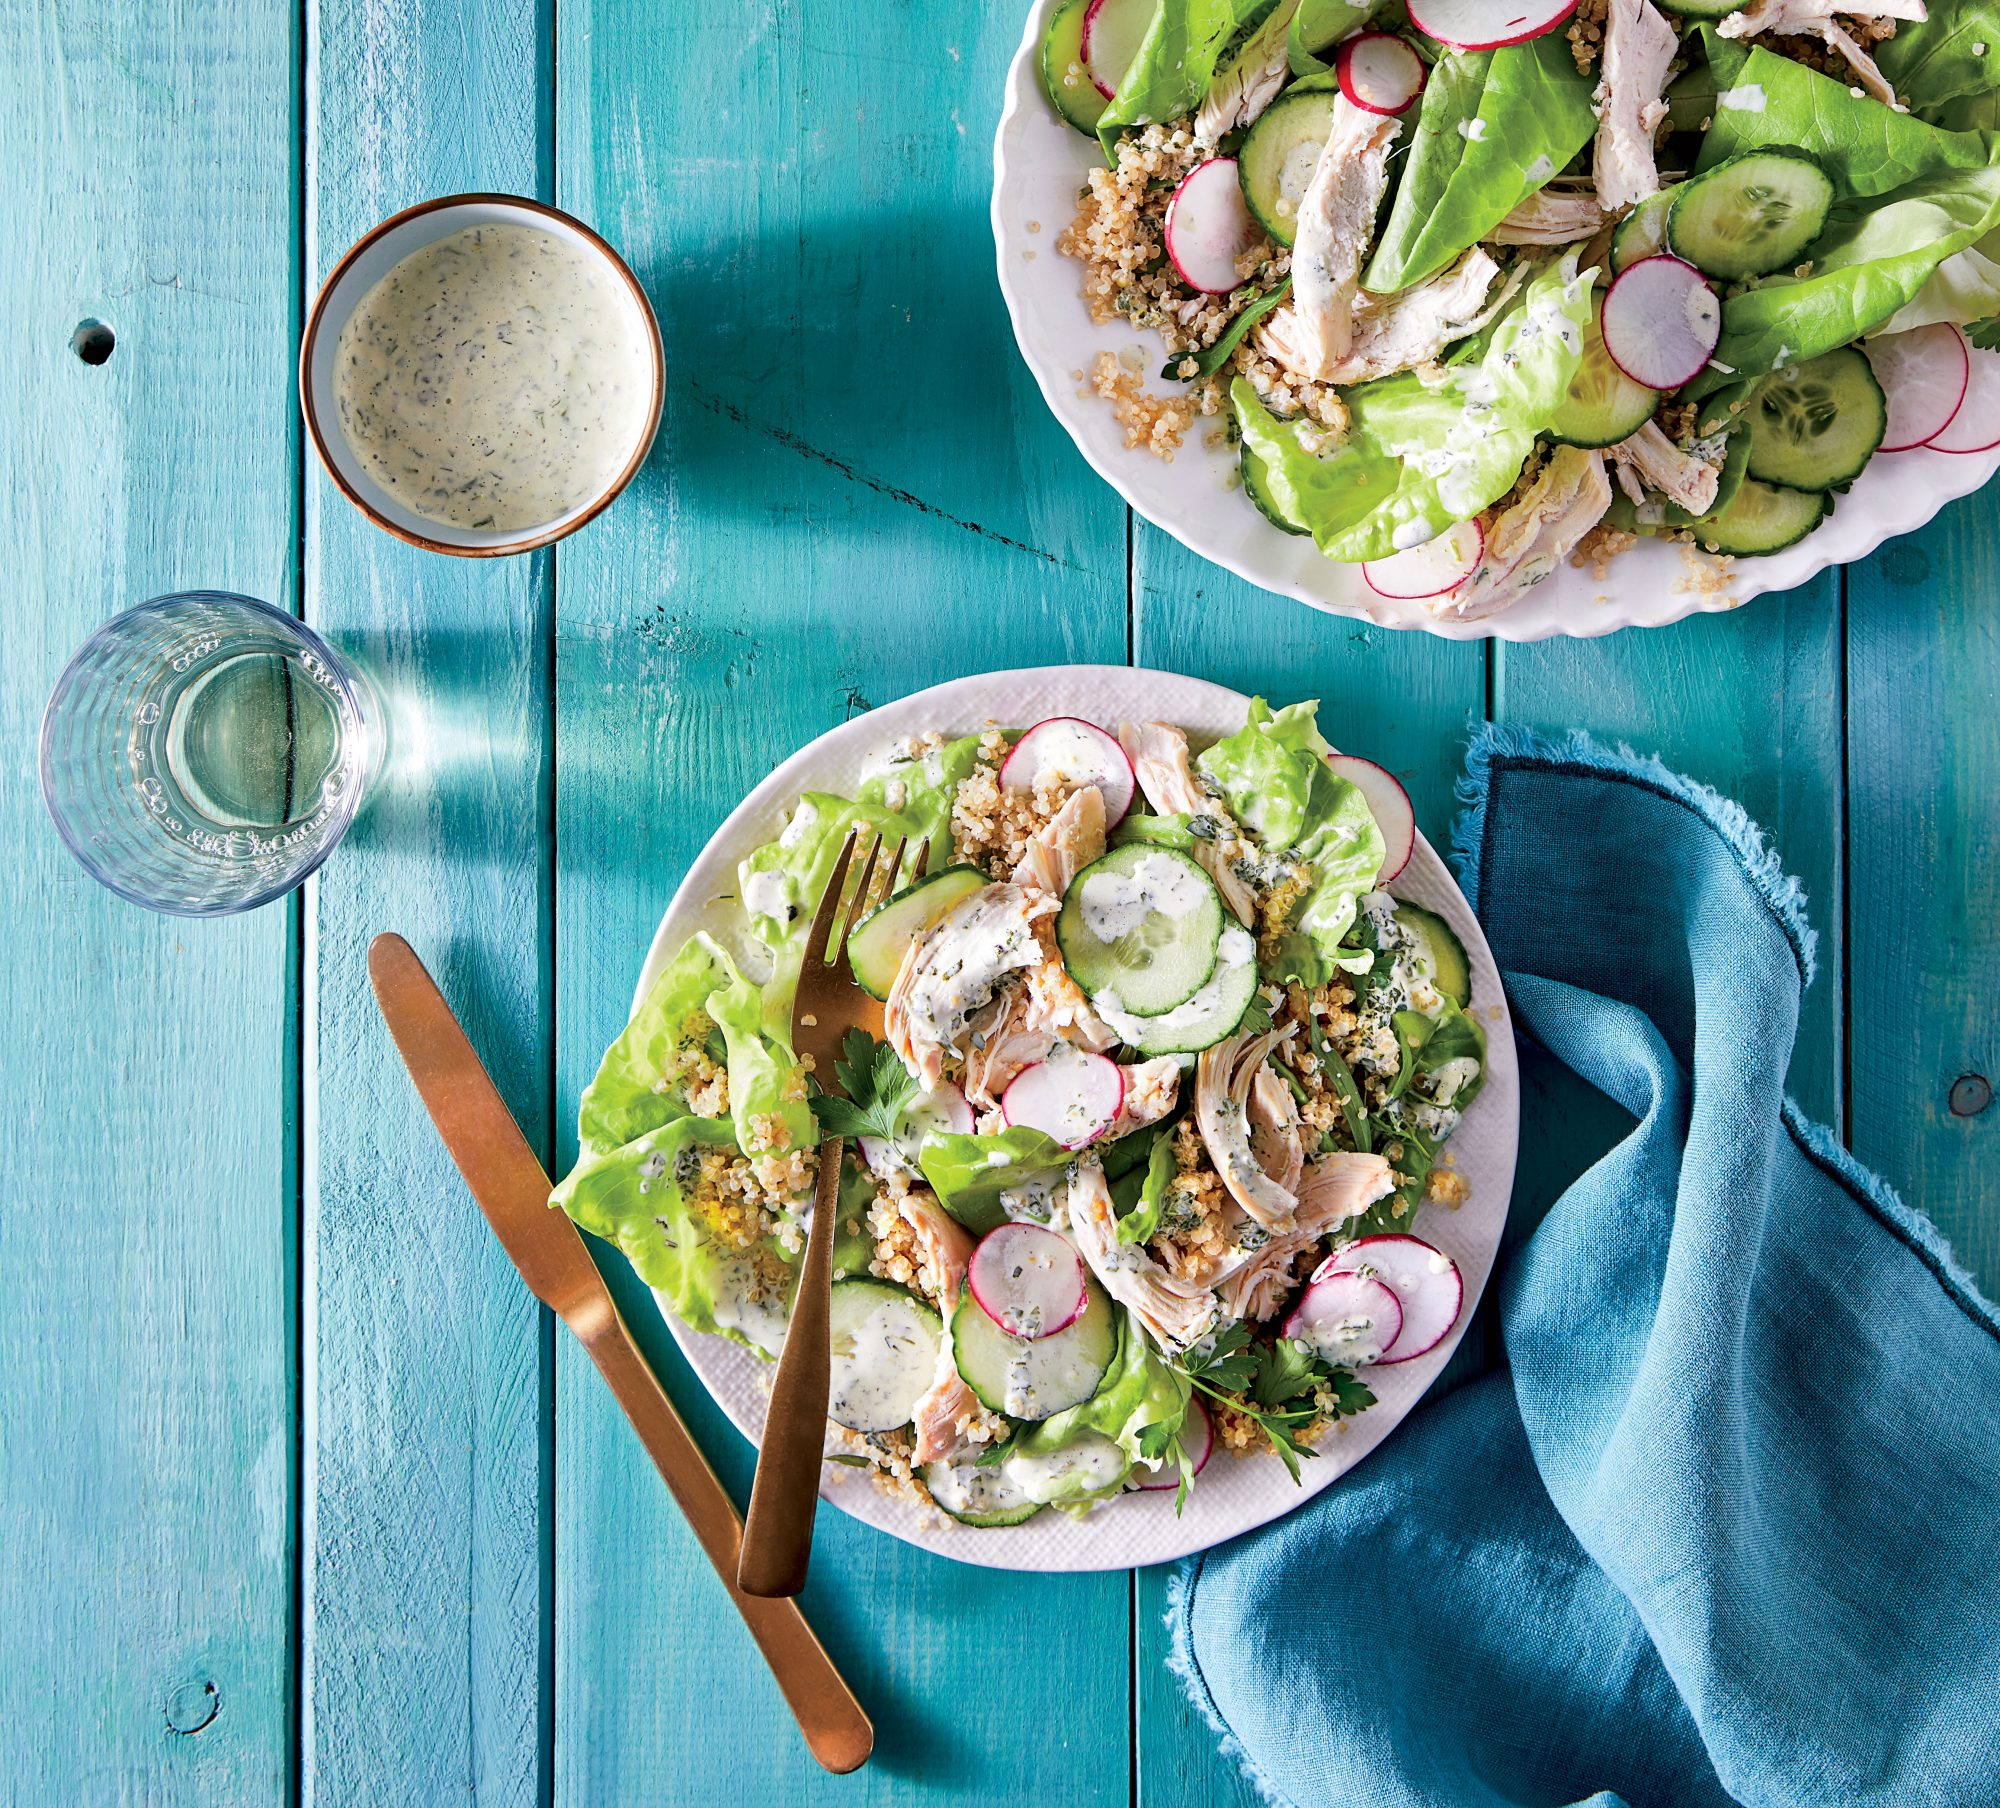 Chicken Quinoa Salad With Green Goddess Dressing Recipe Southern Living